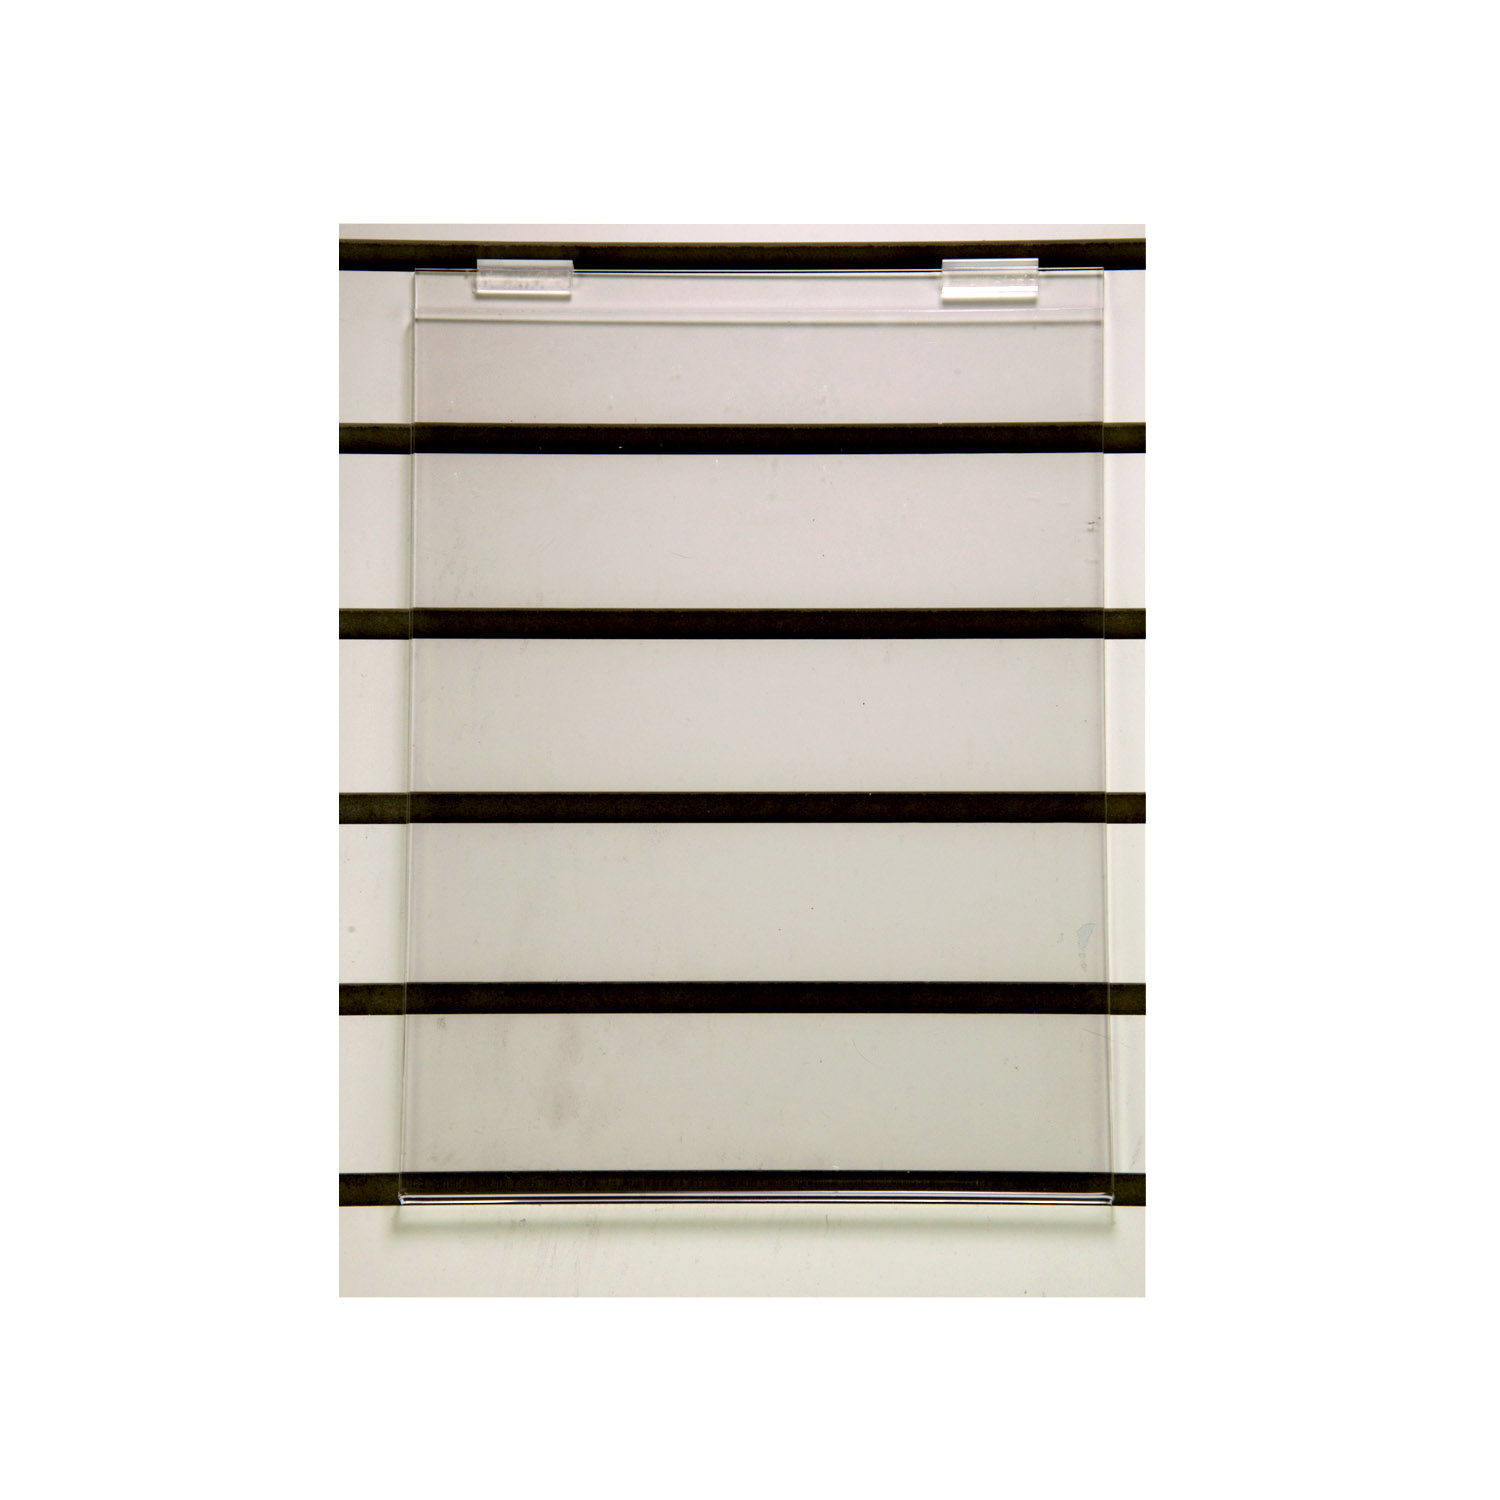 Vertical Slatwall Panel Pictures To Pin On Pinterest